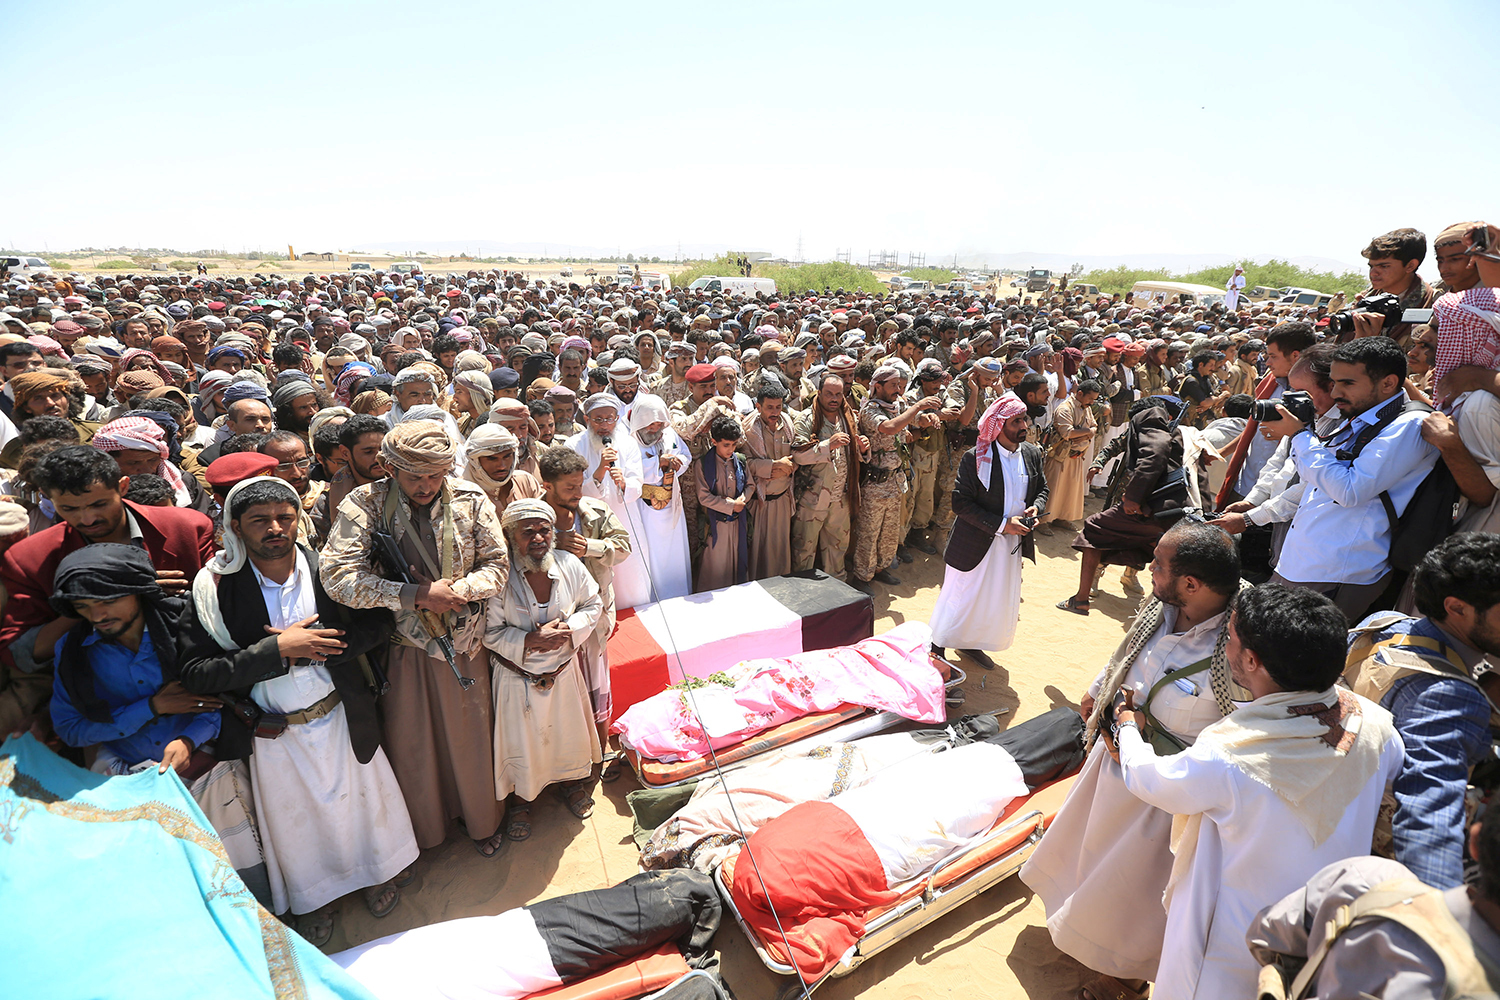 MARIB 2016-10-09 Mourners perform prayers during the funeral of army officers, including Major-General Abdel-Rab al-Shadadi, a top general in forces loyal to Yemeni President Abd-Rabbu Mansour Hadi's government killed in fighting with Iran-aligned Houthi troops, Yemen October 9, 2016. REUTERS/Ali Owidha Photo: / REUTERS / TT / kod 72000